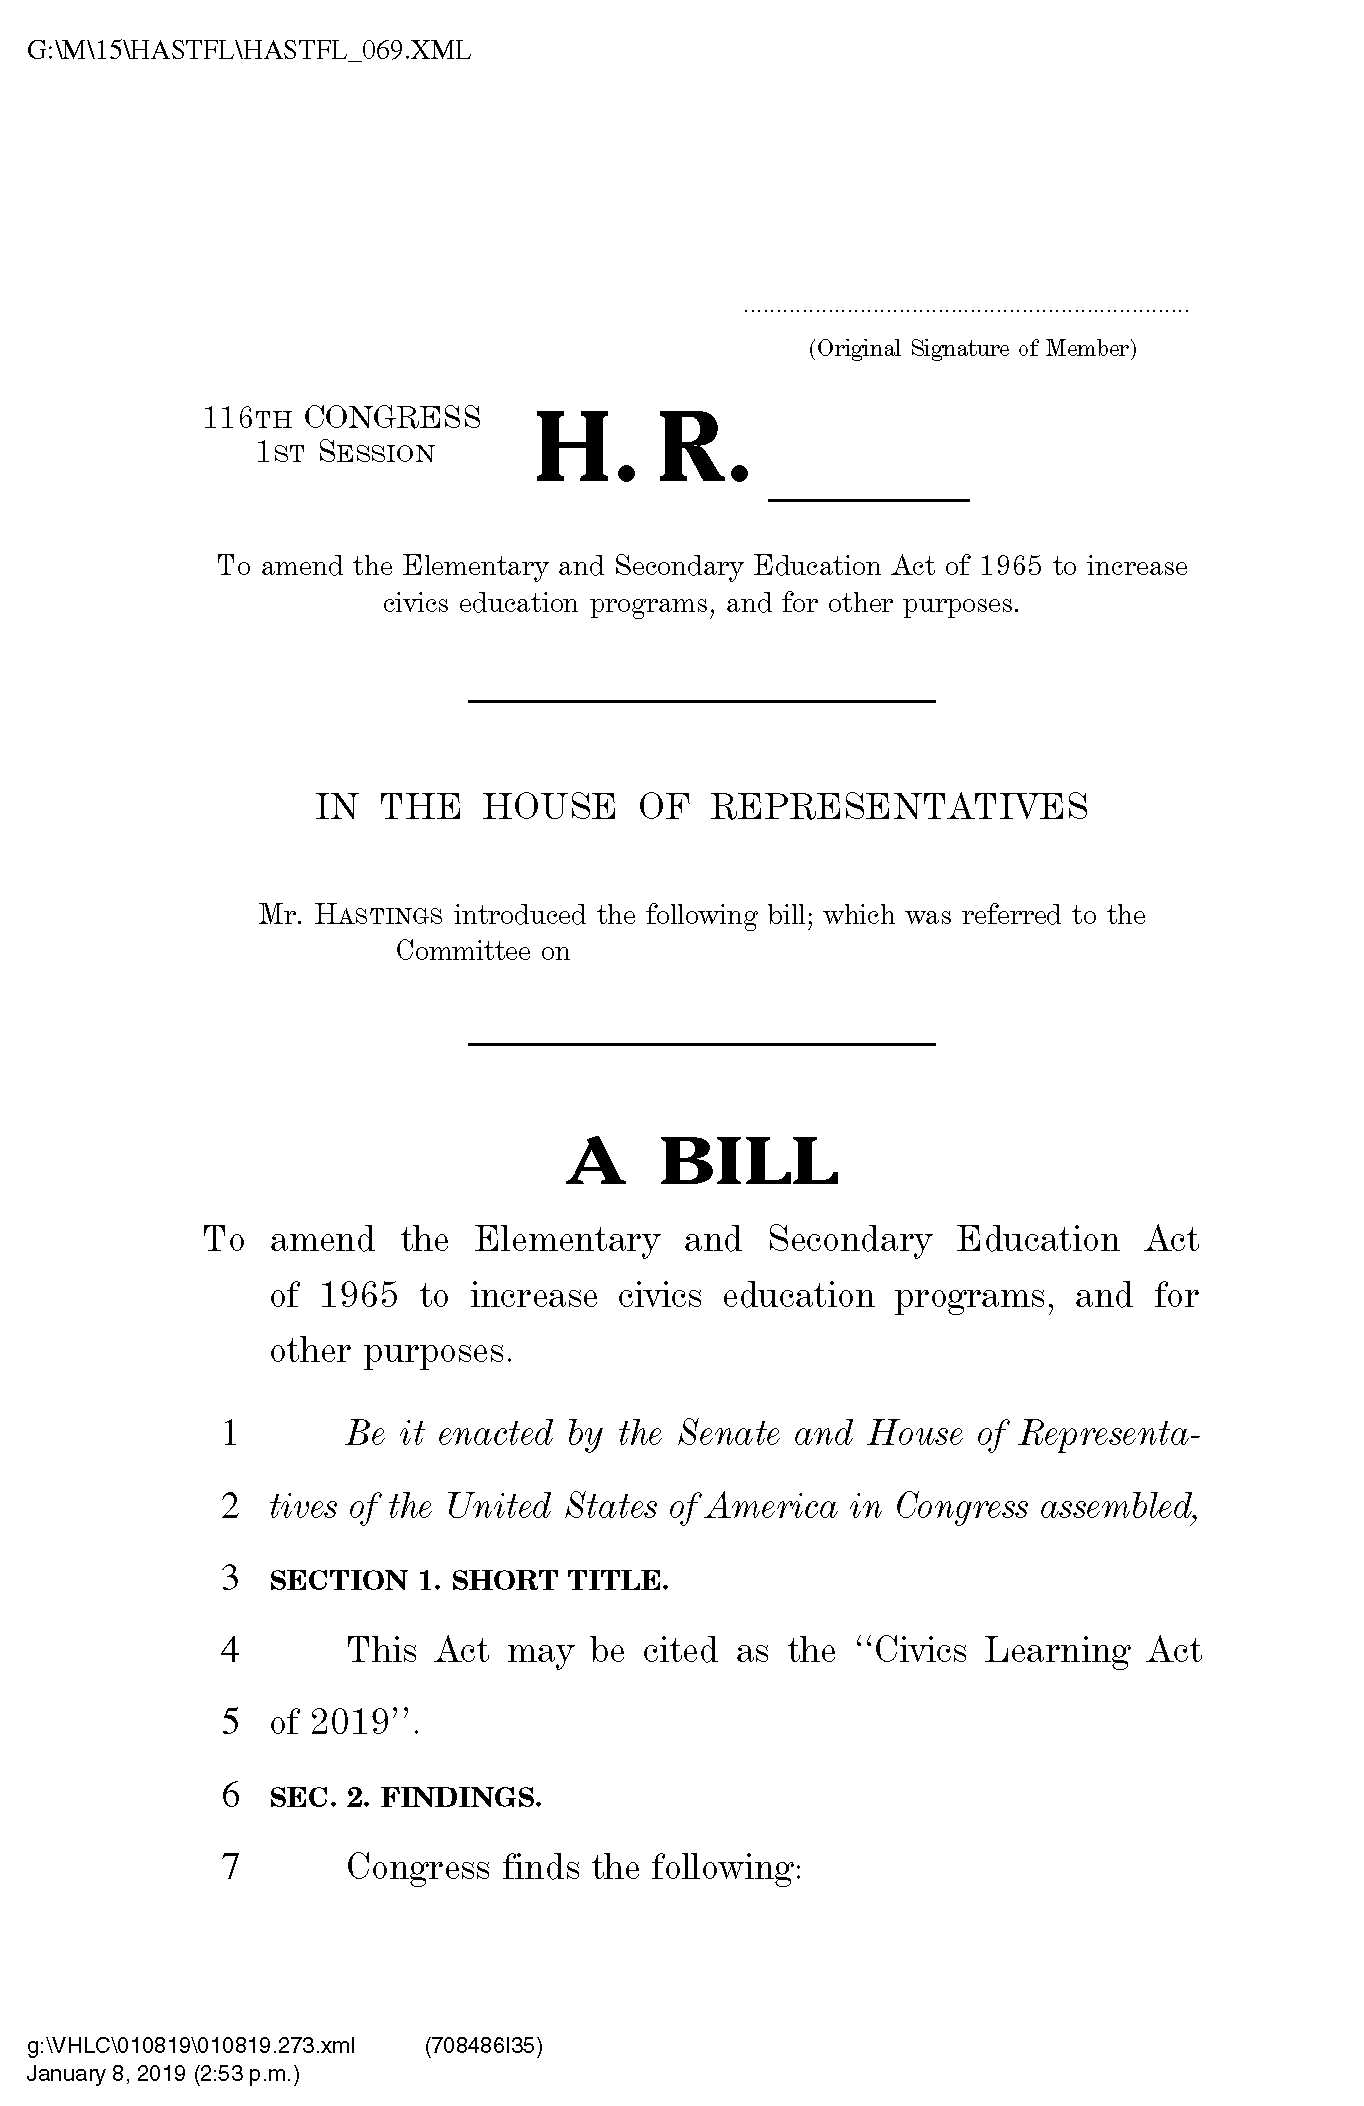 Screenshot of the Civics Learning Act of 2019, which featured data from the Annenberg Civics Survey.